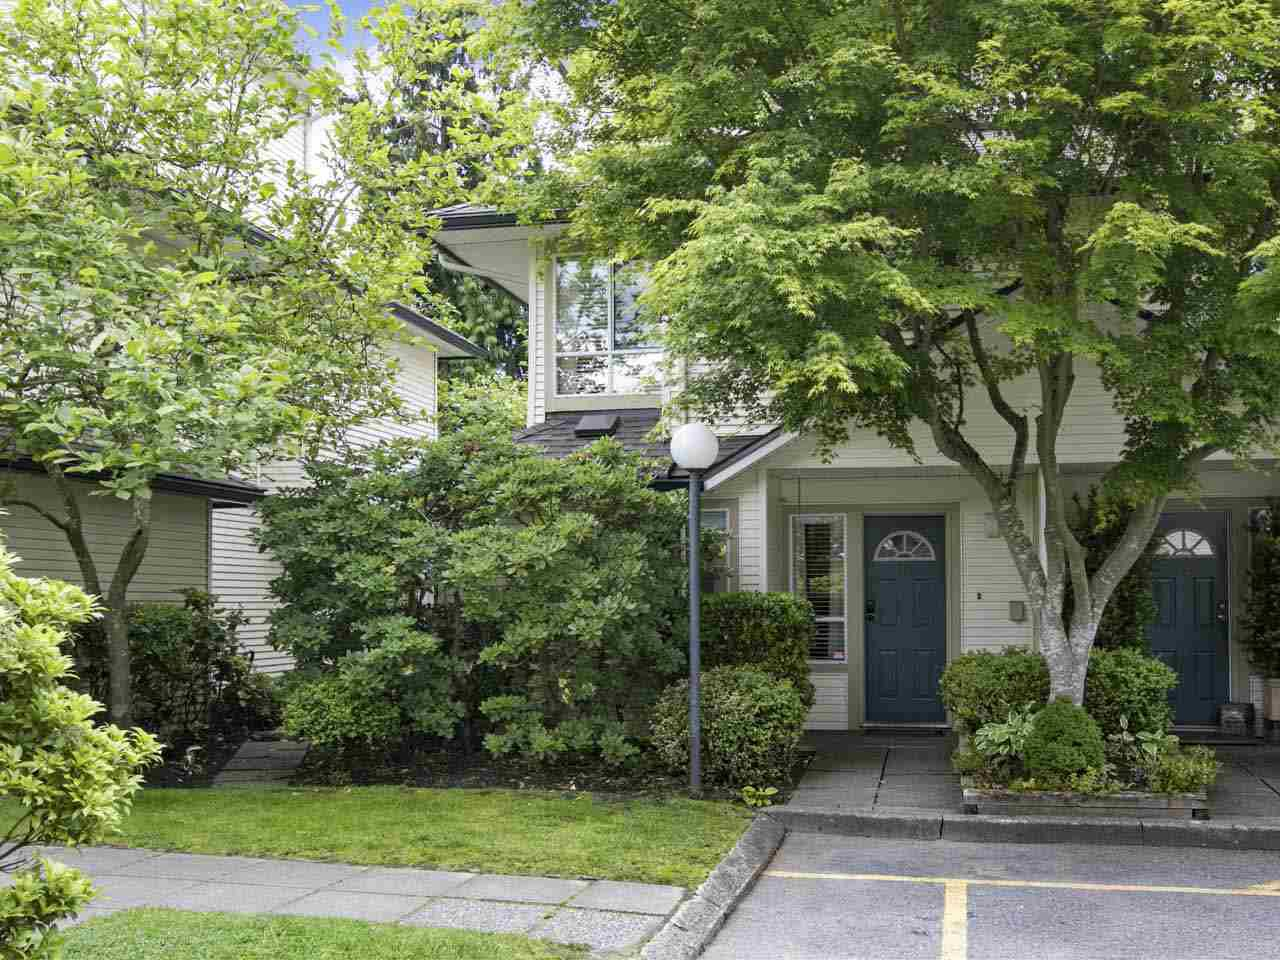 Main Photo: 14 4285 SOPHIA Street in Vancouver: Main Townhouse for sale (Vancouver East)  : MLS®# R2176801